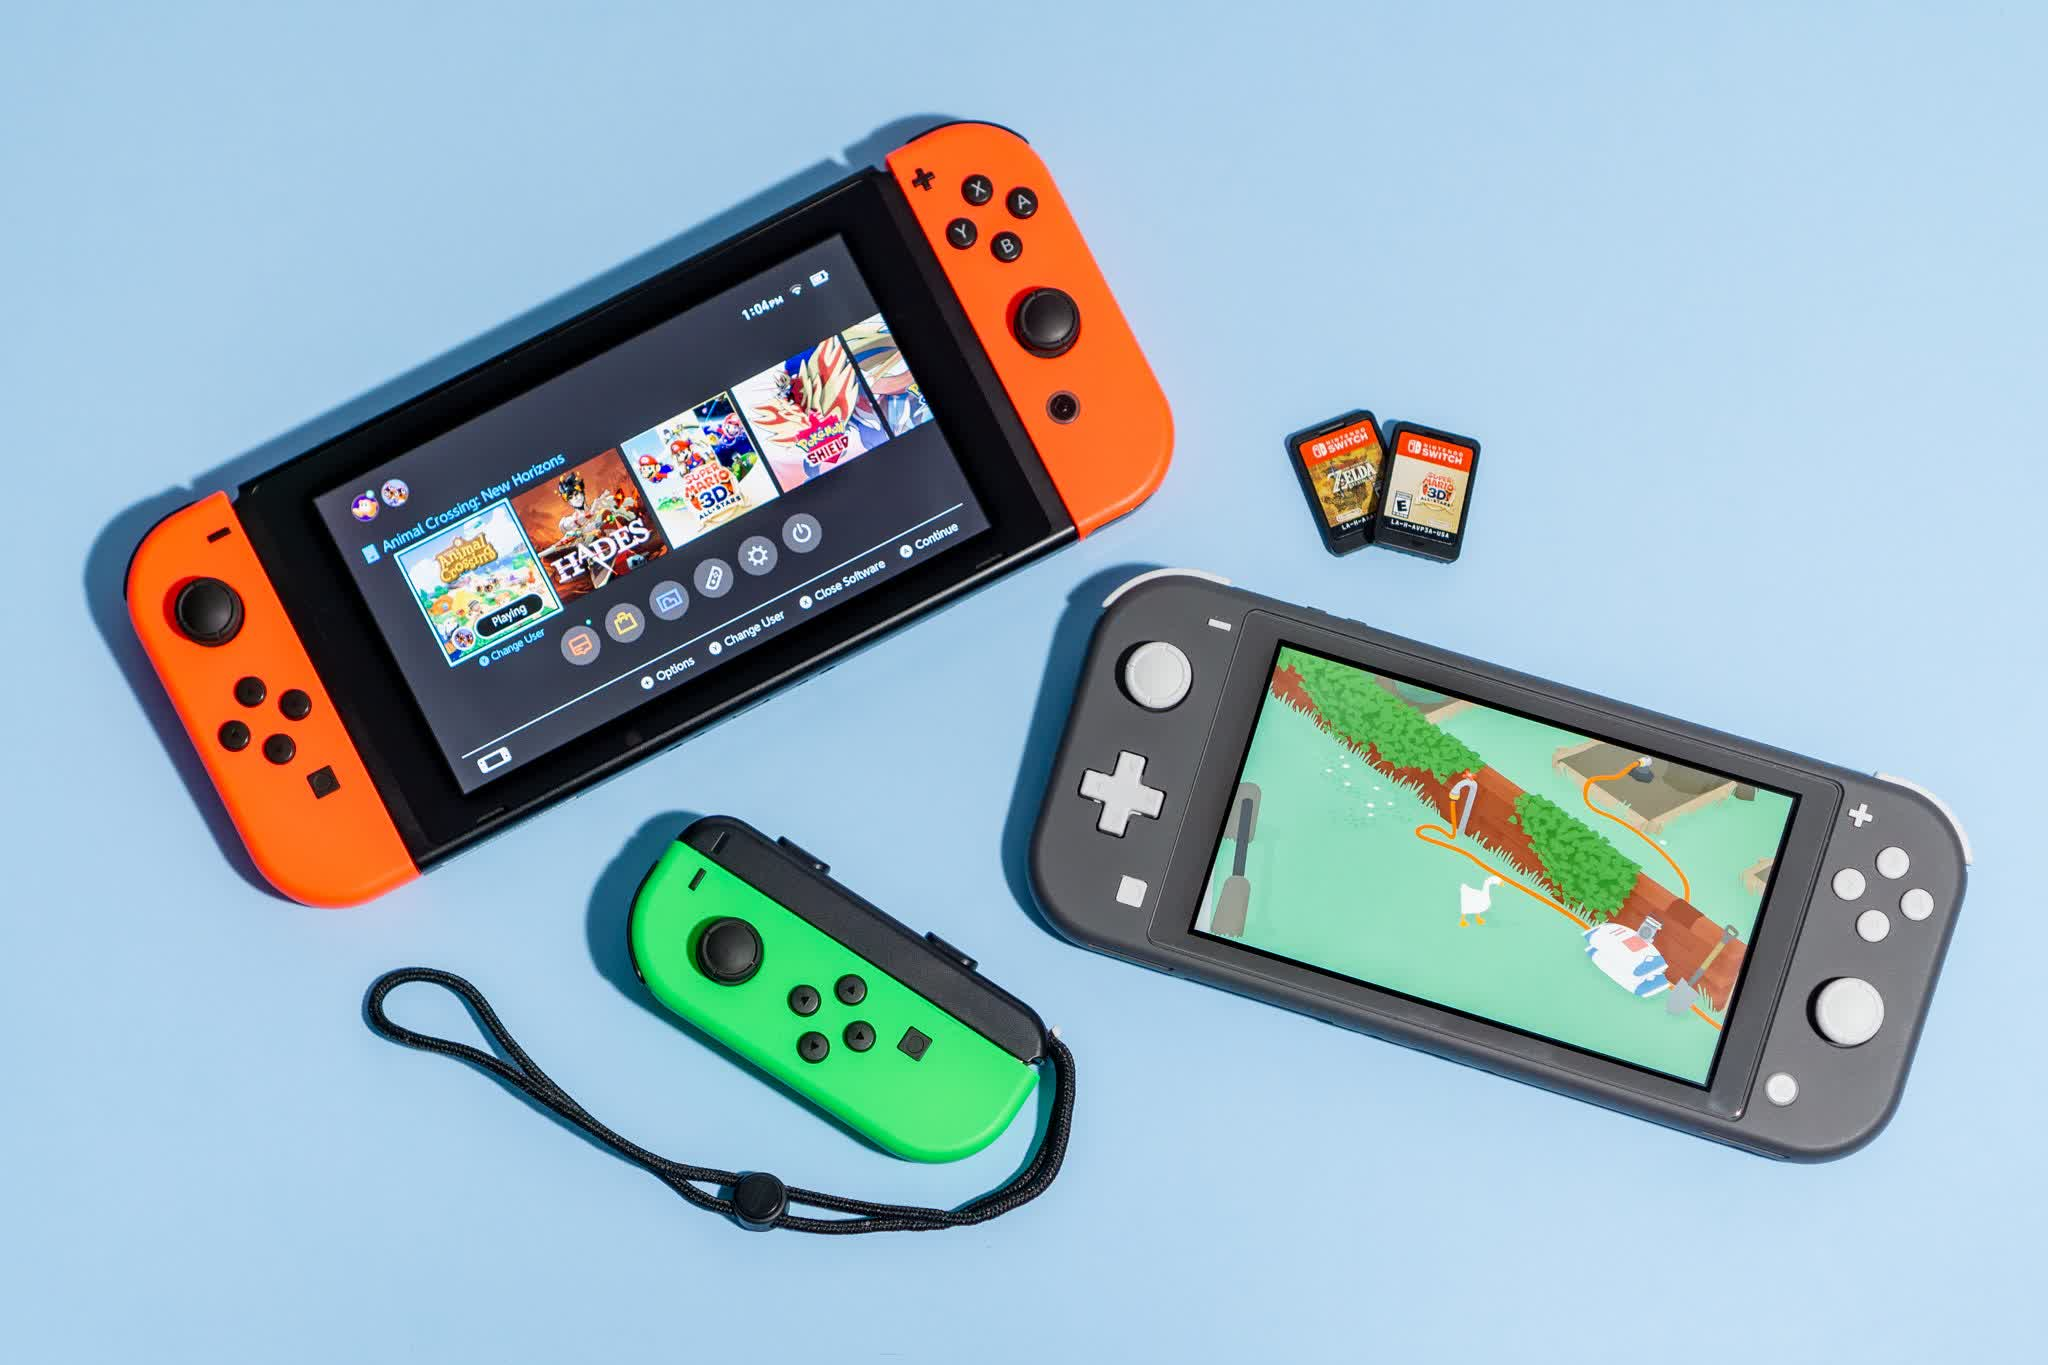 Qualcomm is apparently working on a handheld gaming console